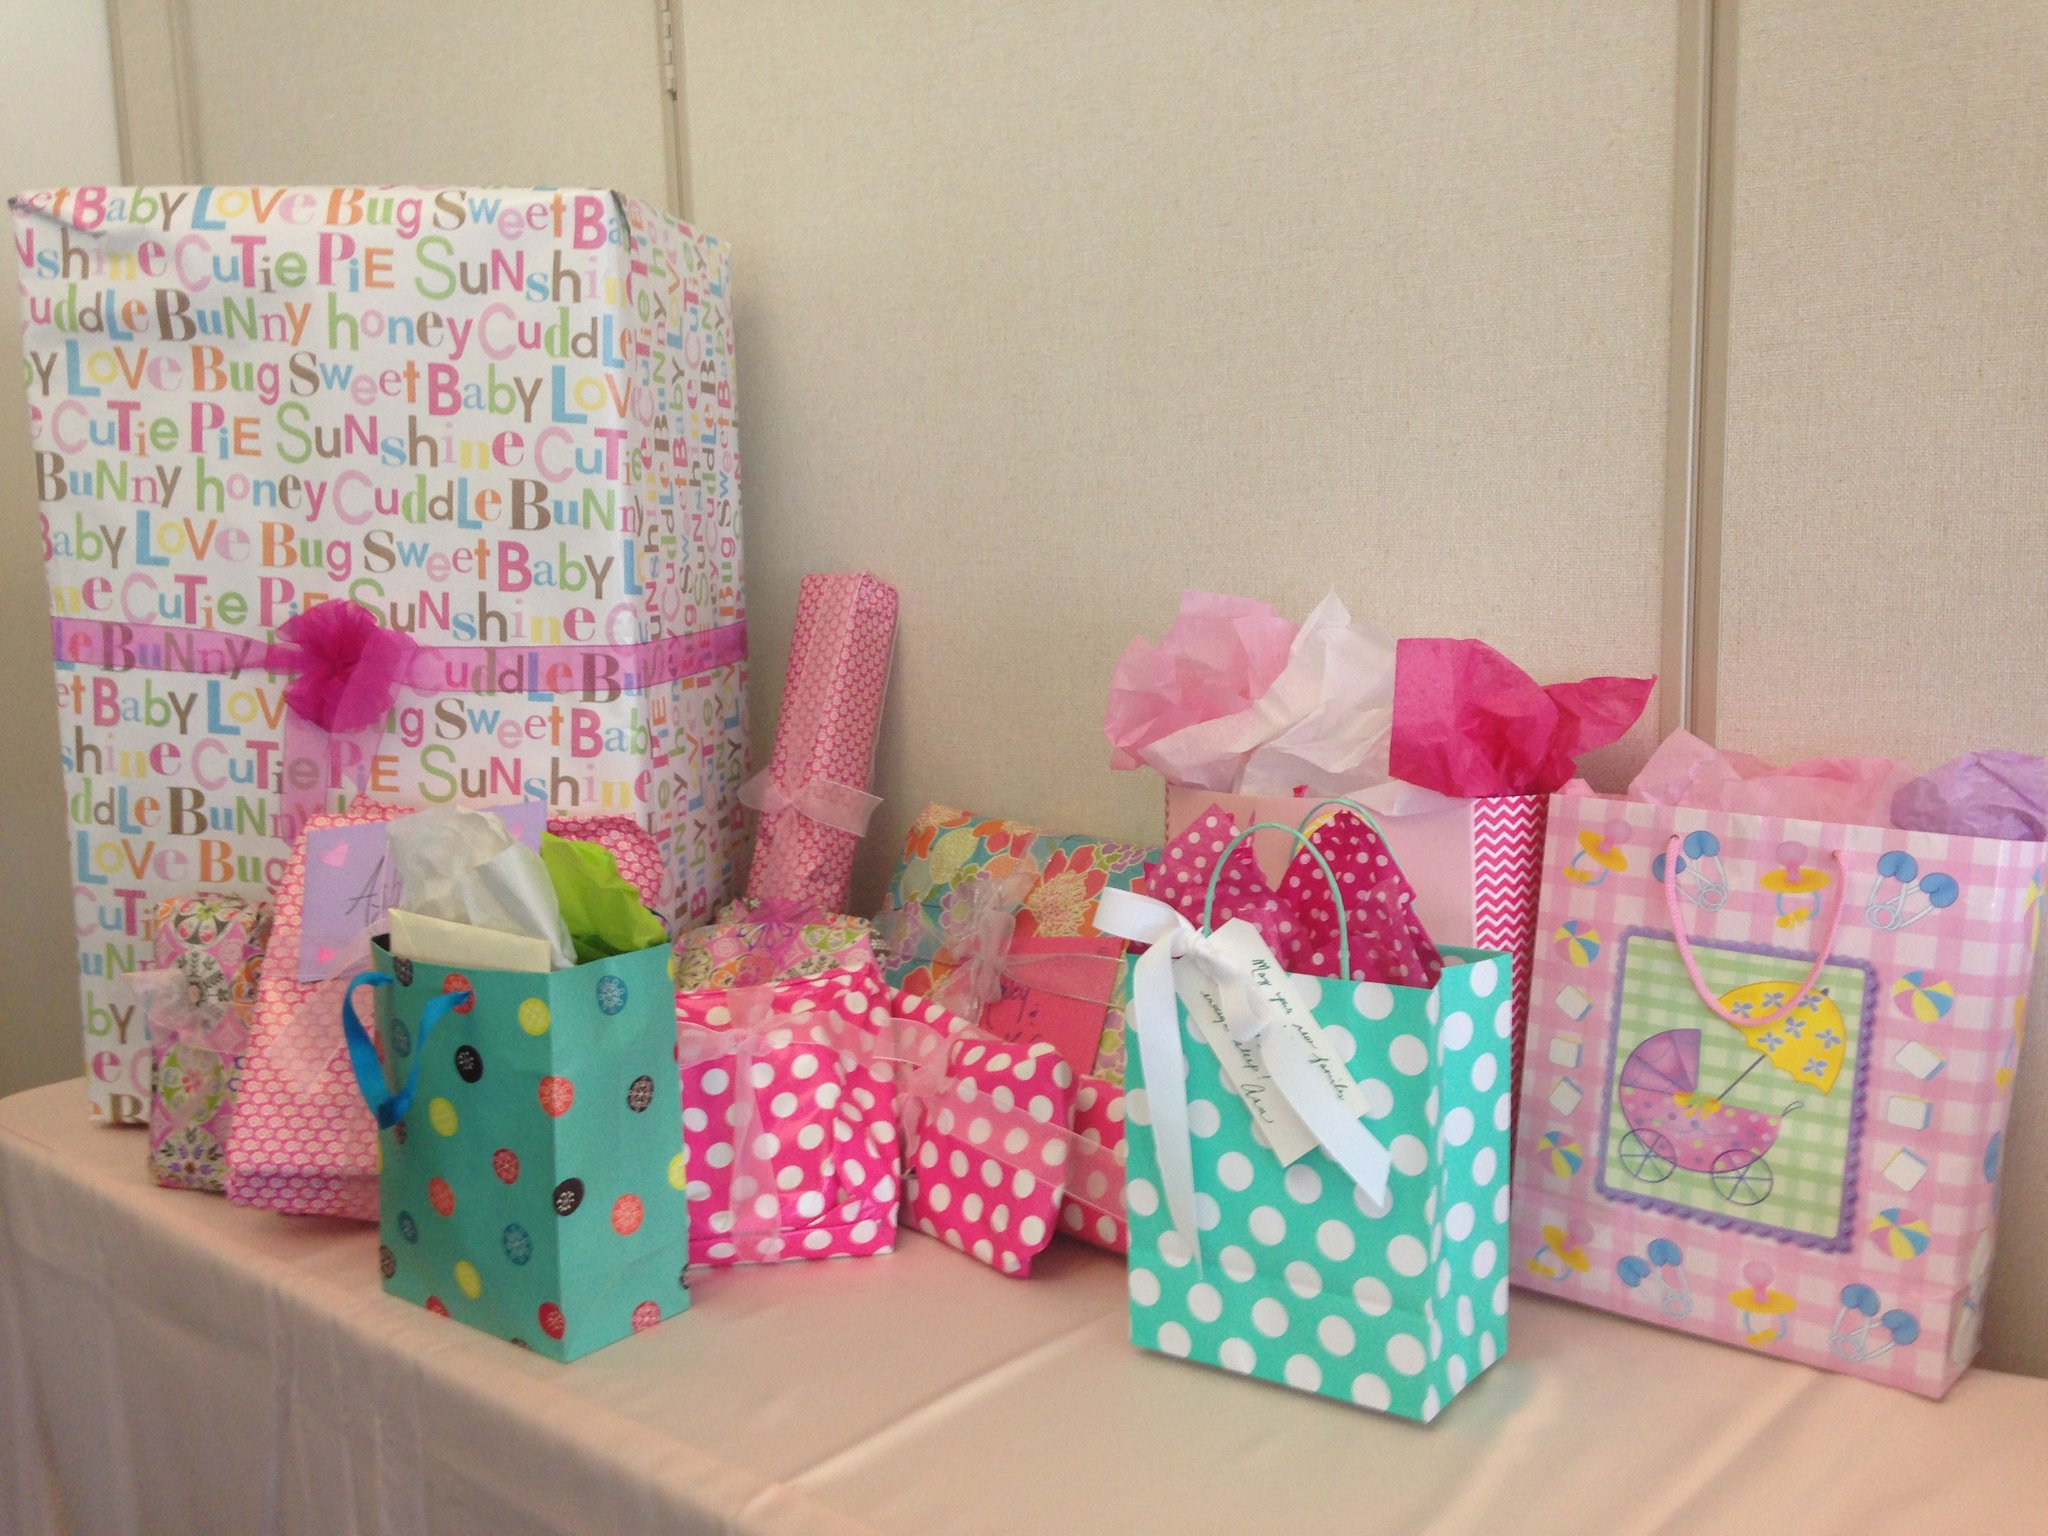 Baby Shower Ideas for Twins!